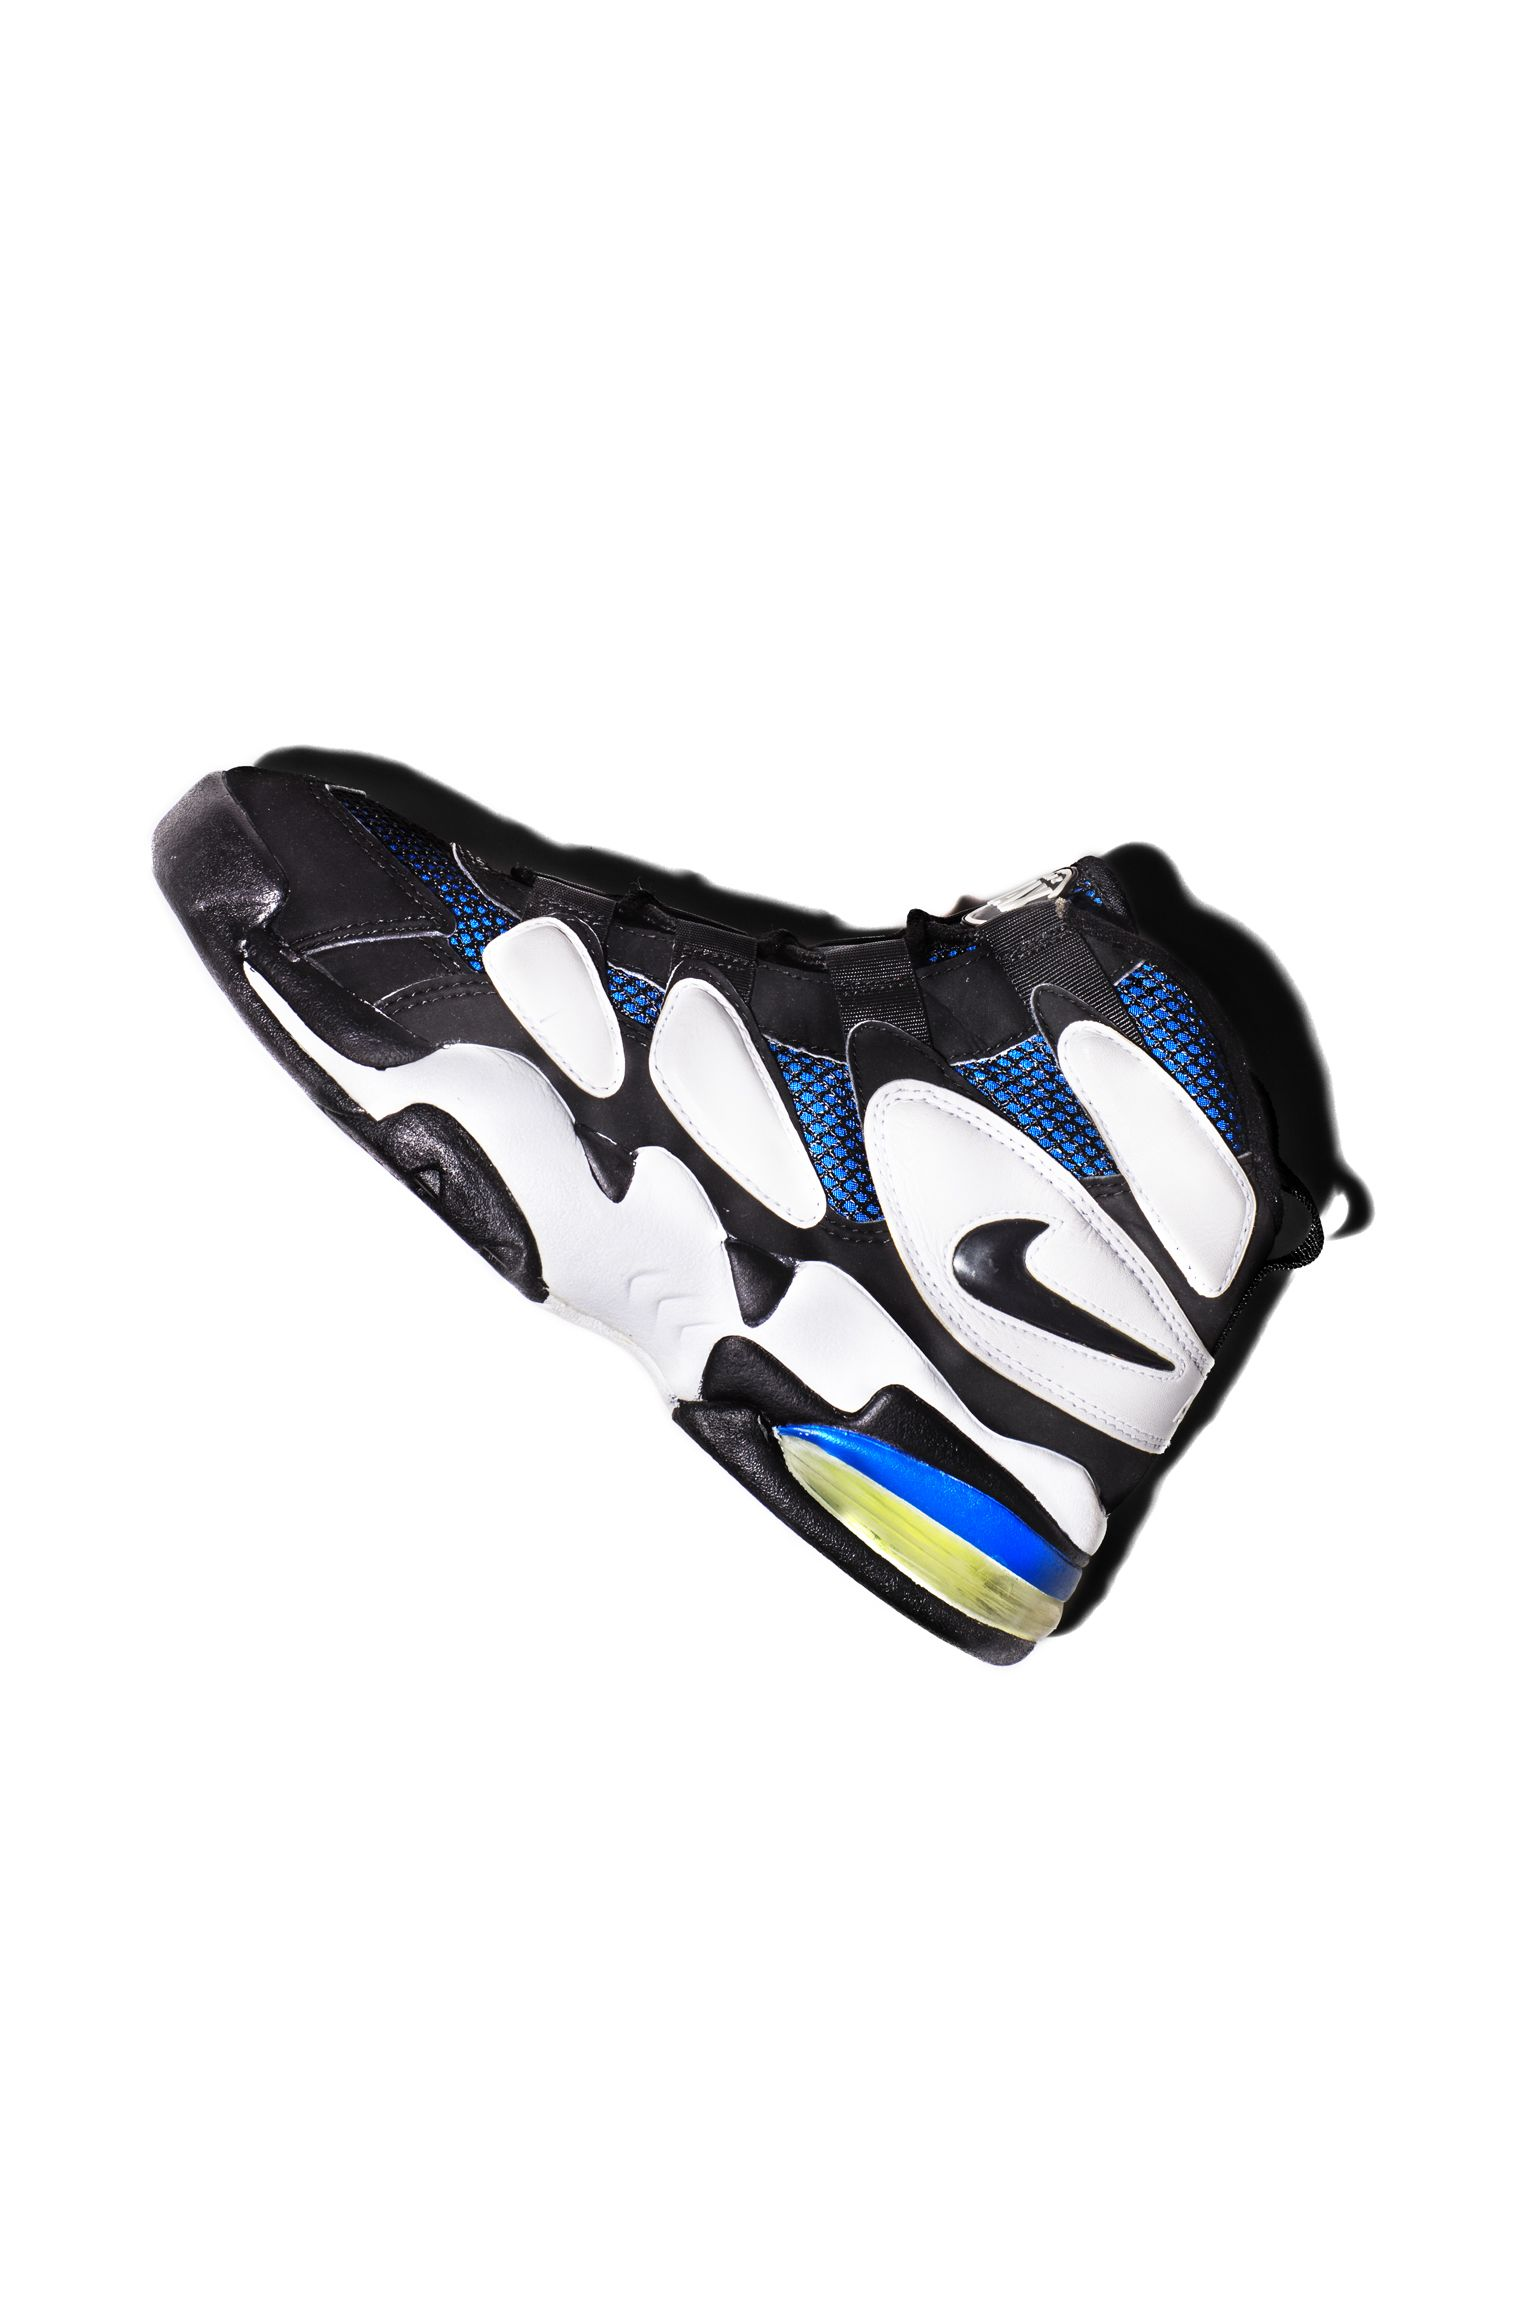 Inside The Vault: Uptempo's Finest